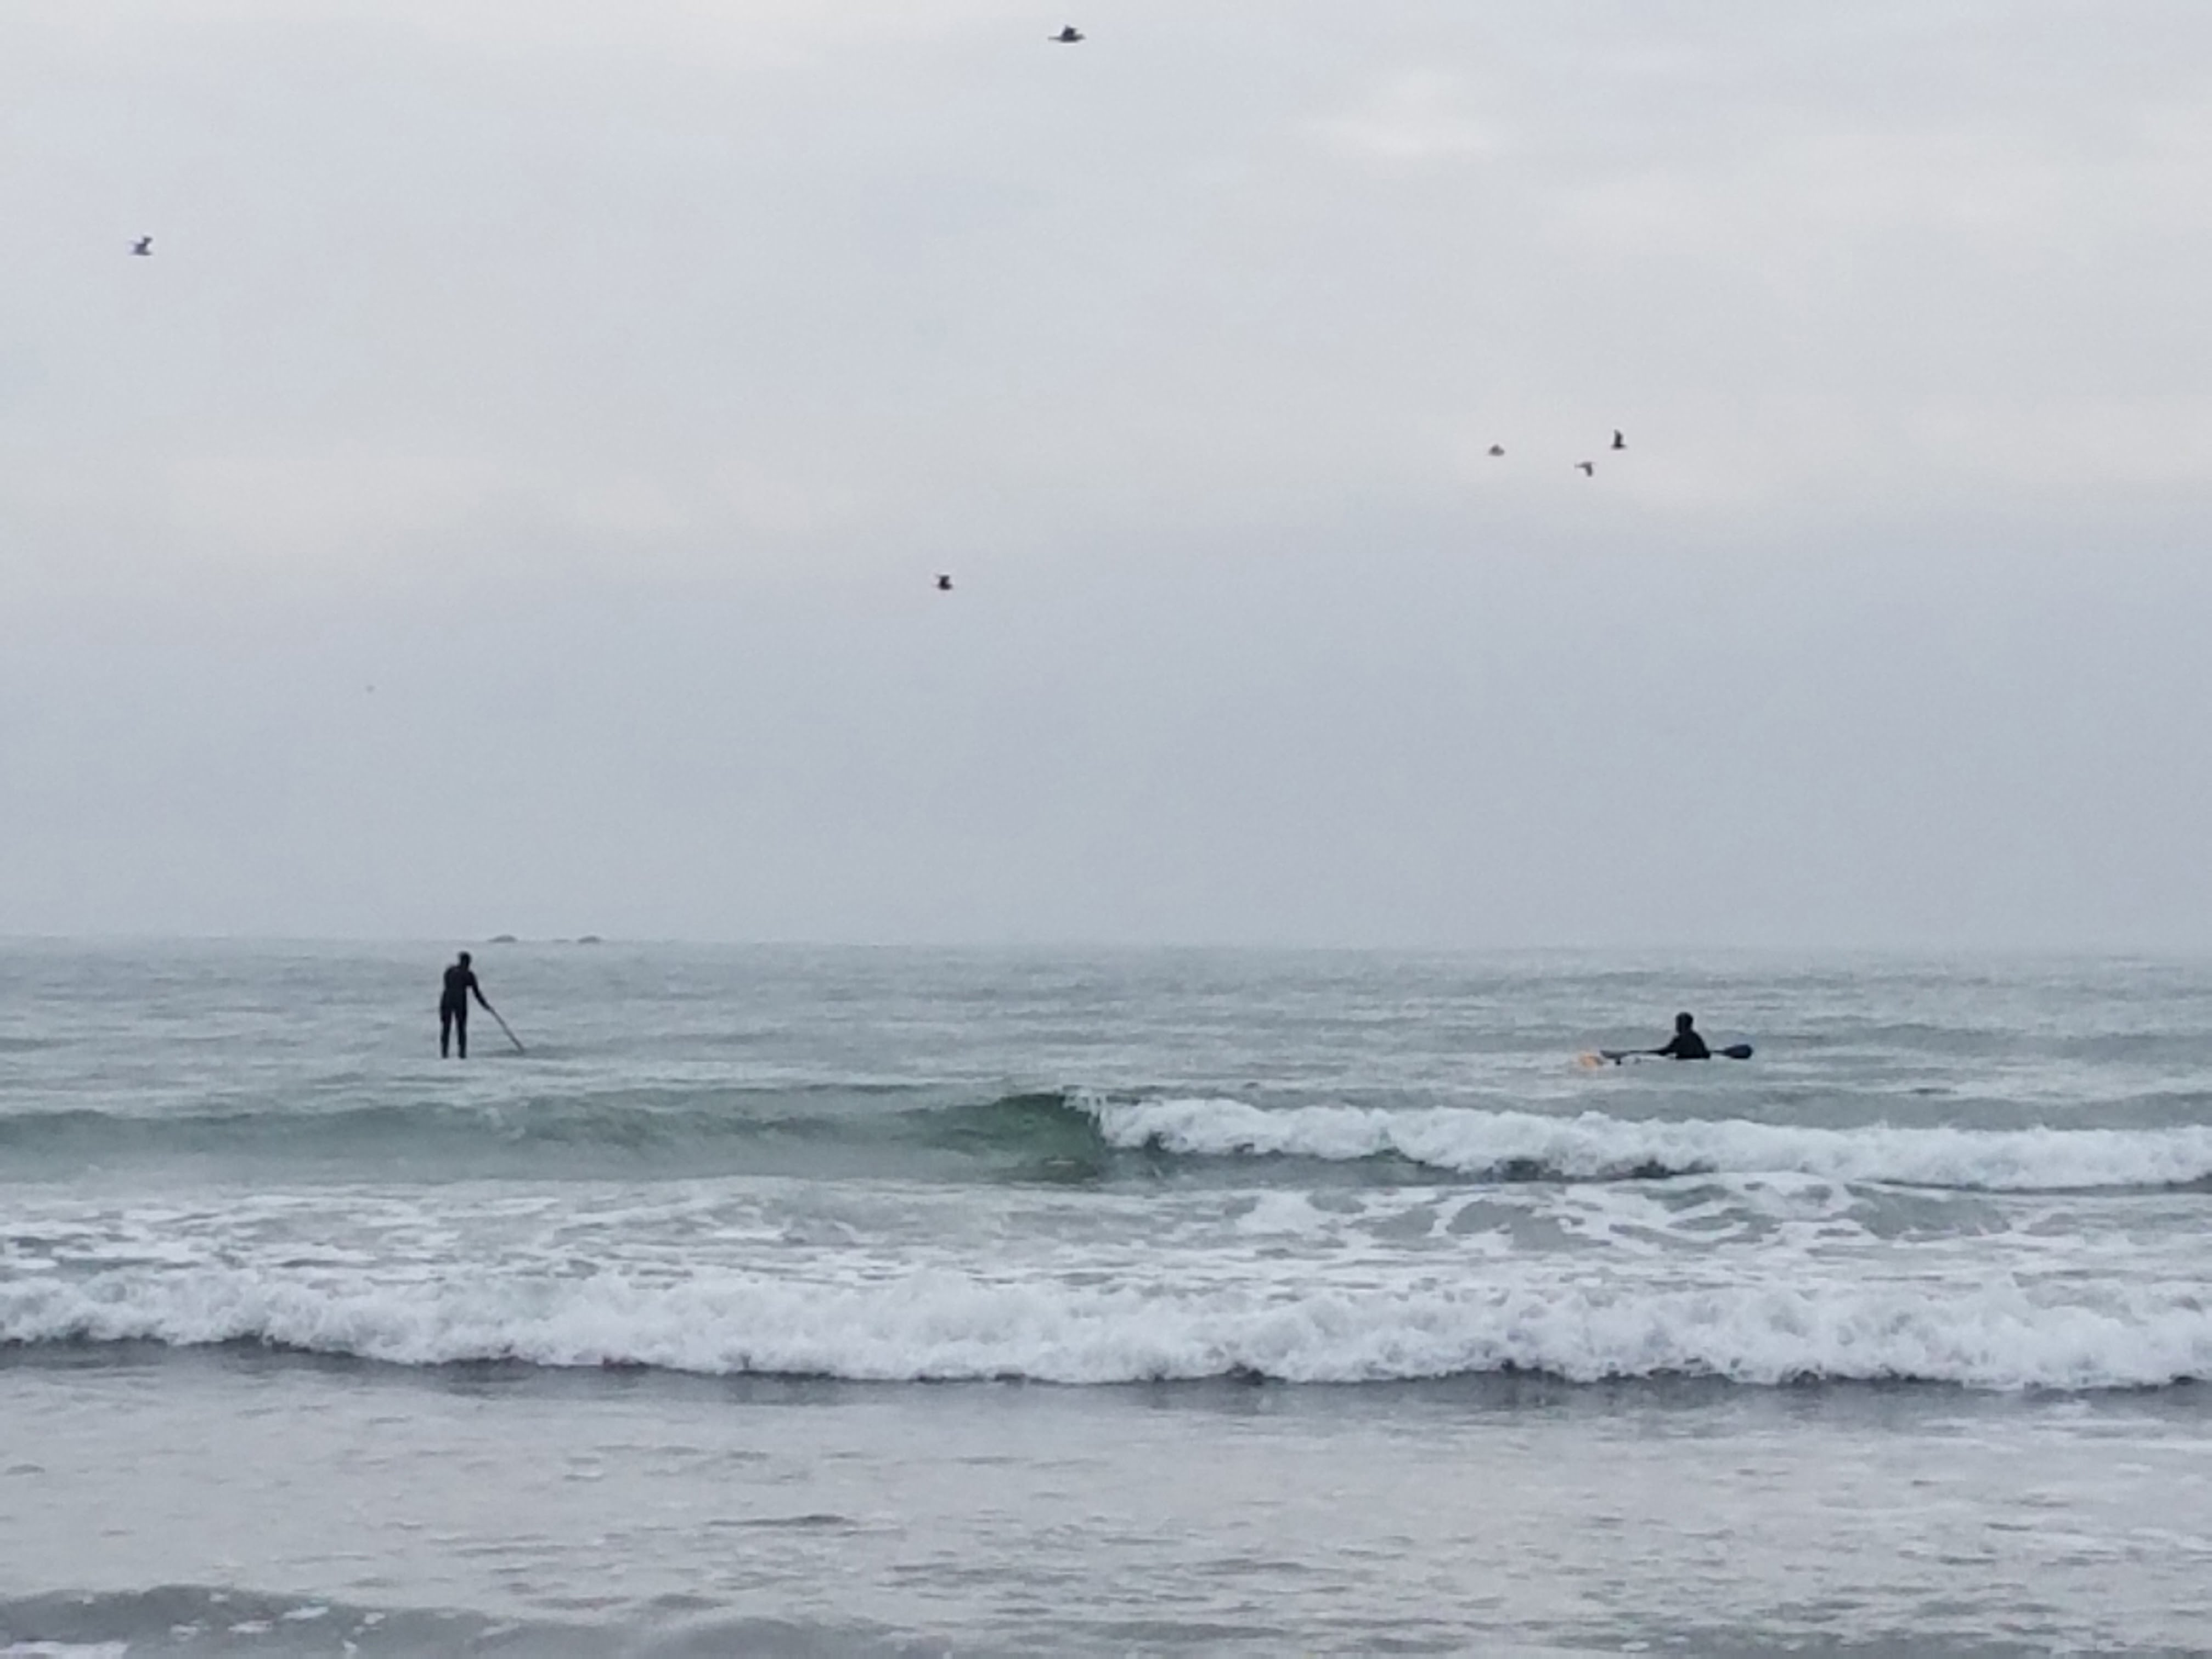 Share the waves!